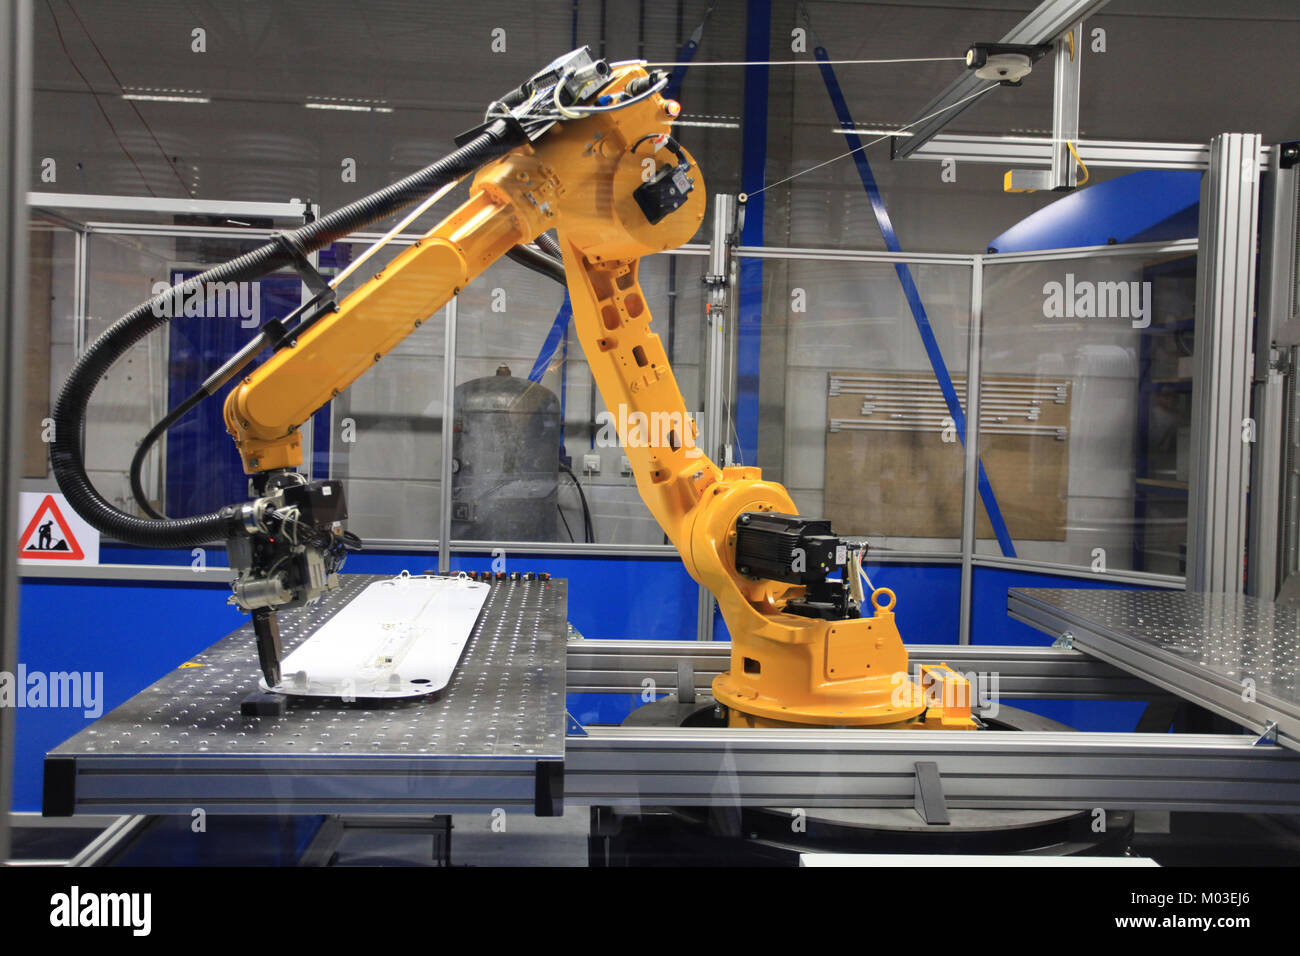 Industrial robotic arm in electronics production line - Stock Image